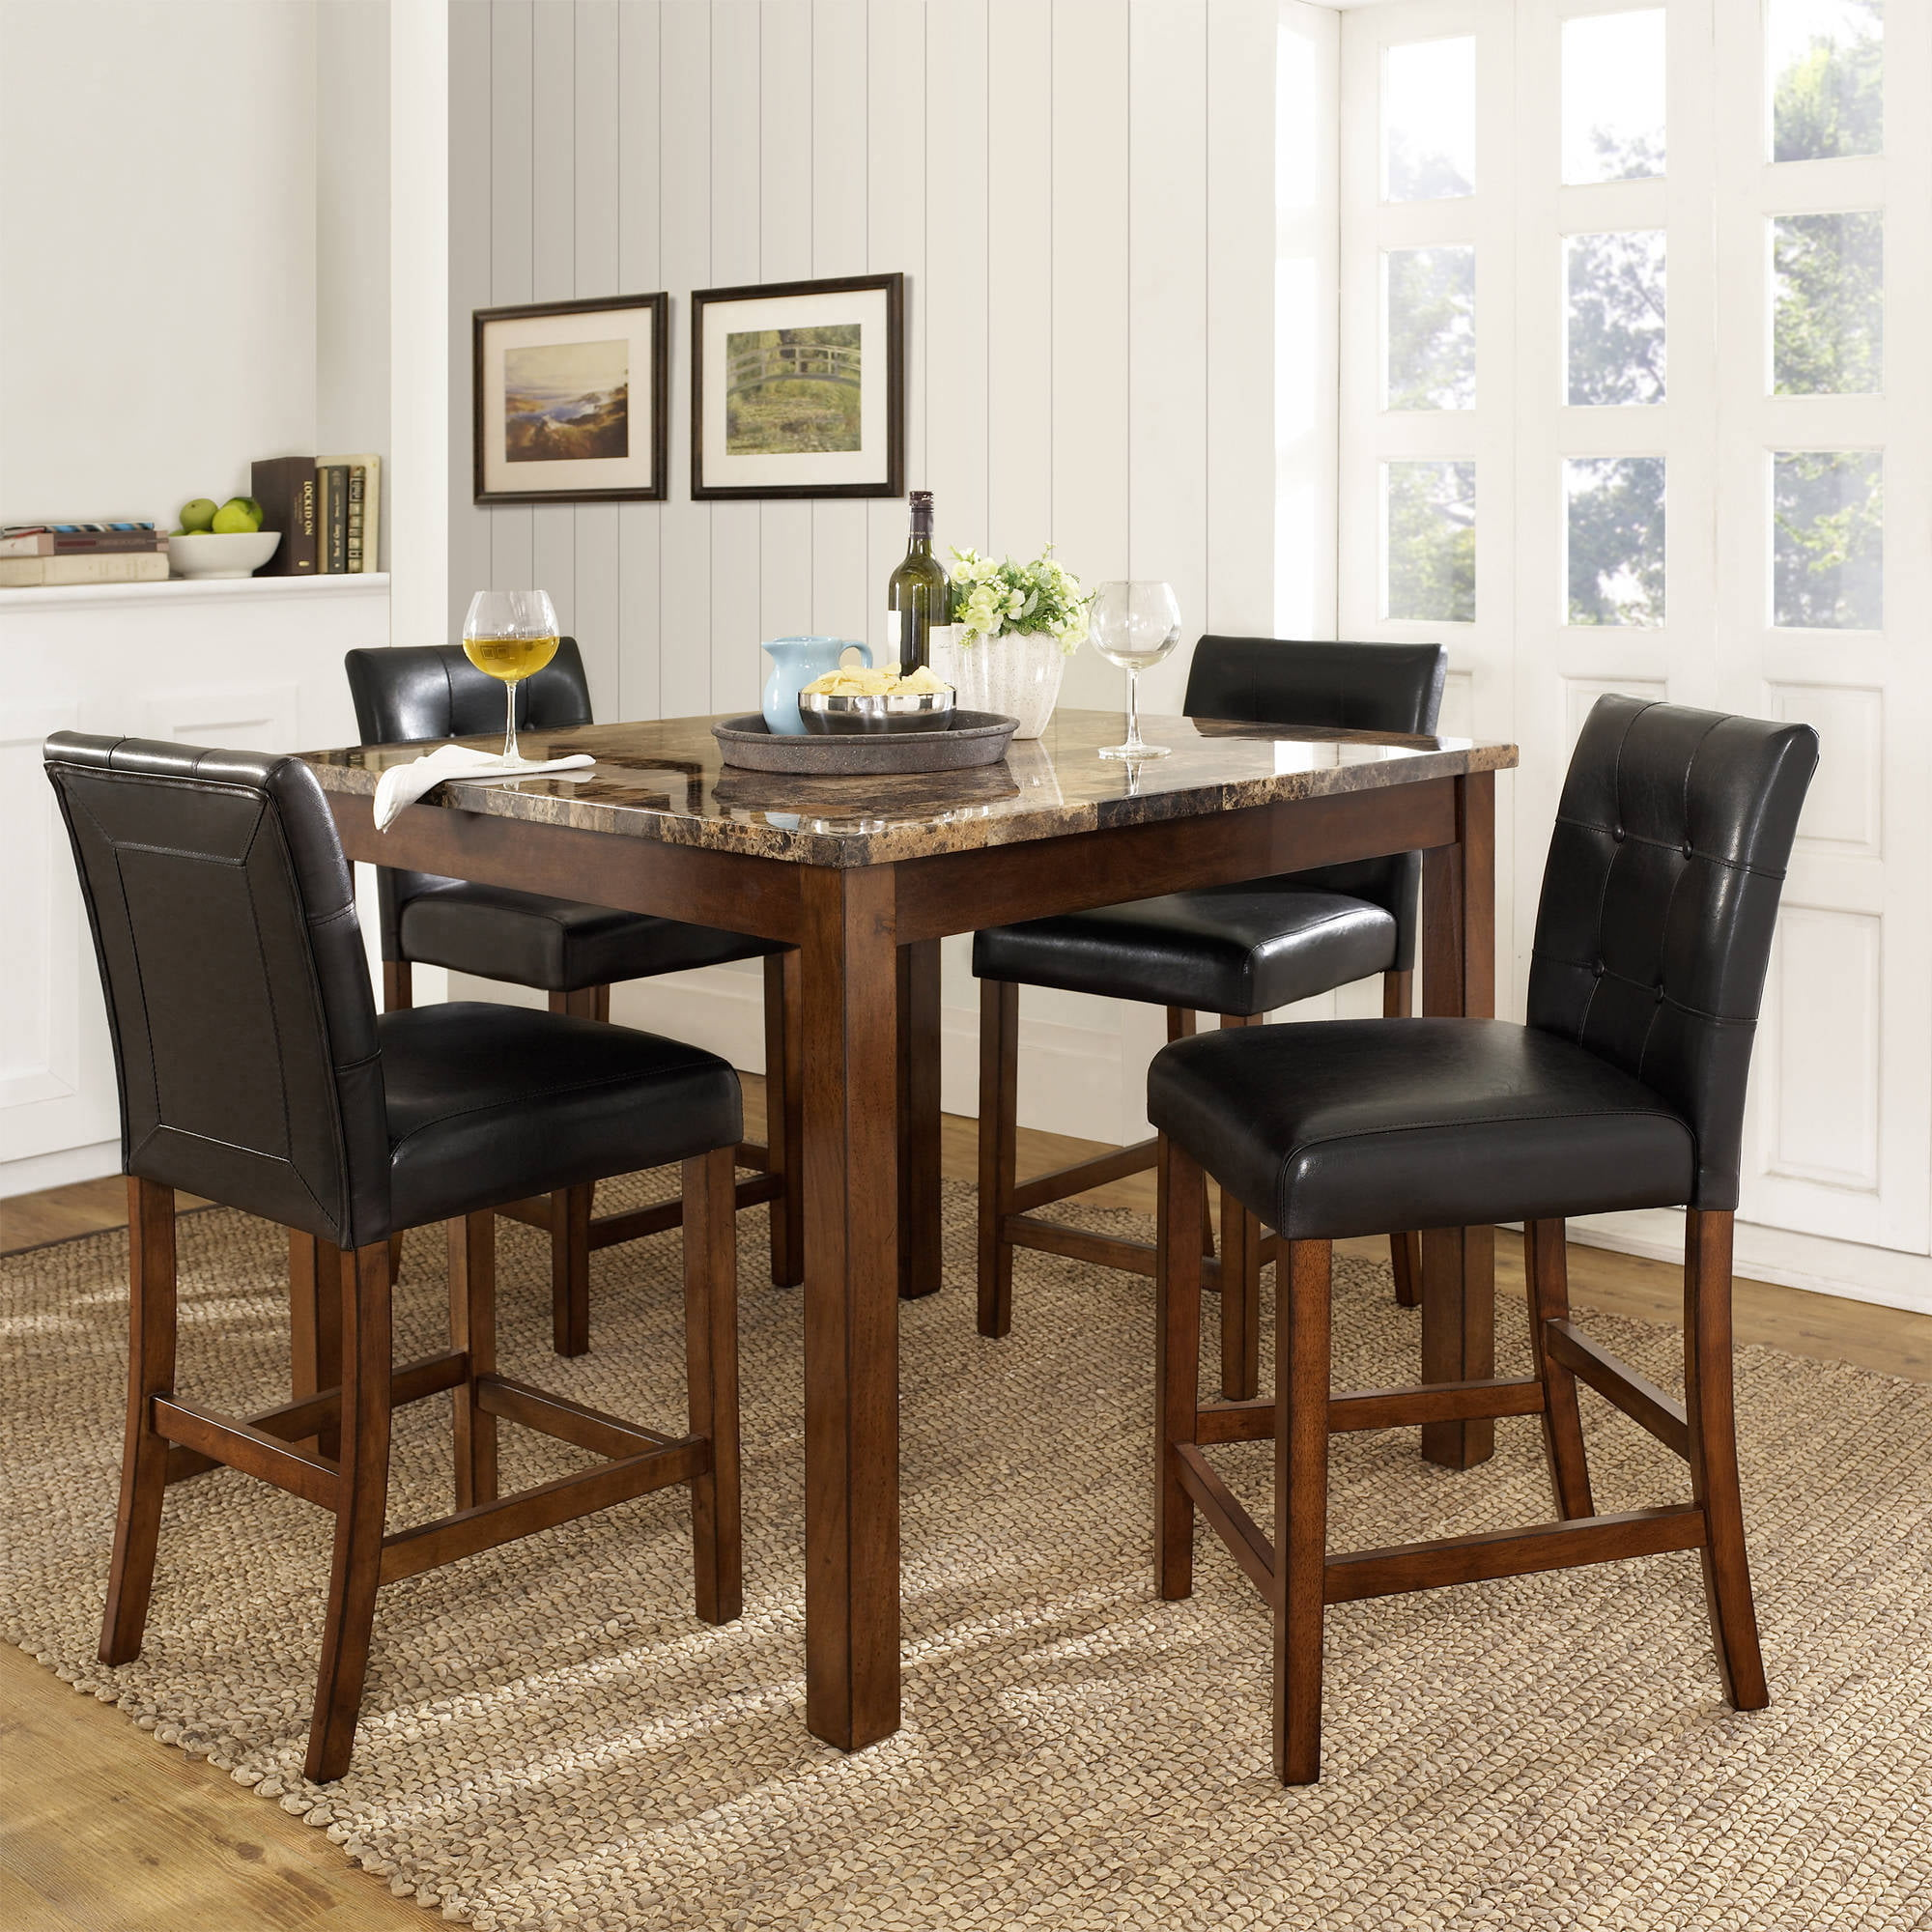 Dining Room Table And Chairs Simple Kitchen & Dining Furniture  Walmart 2017